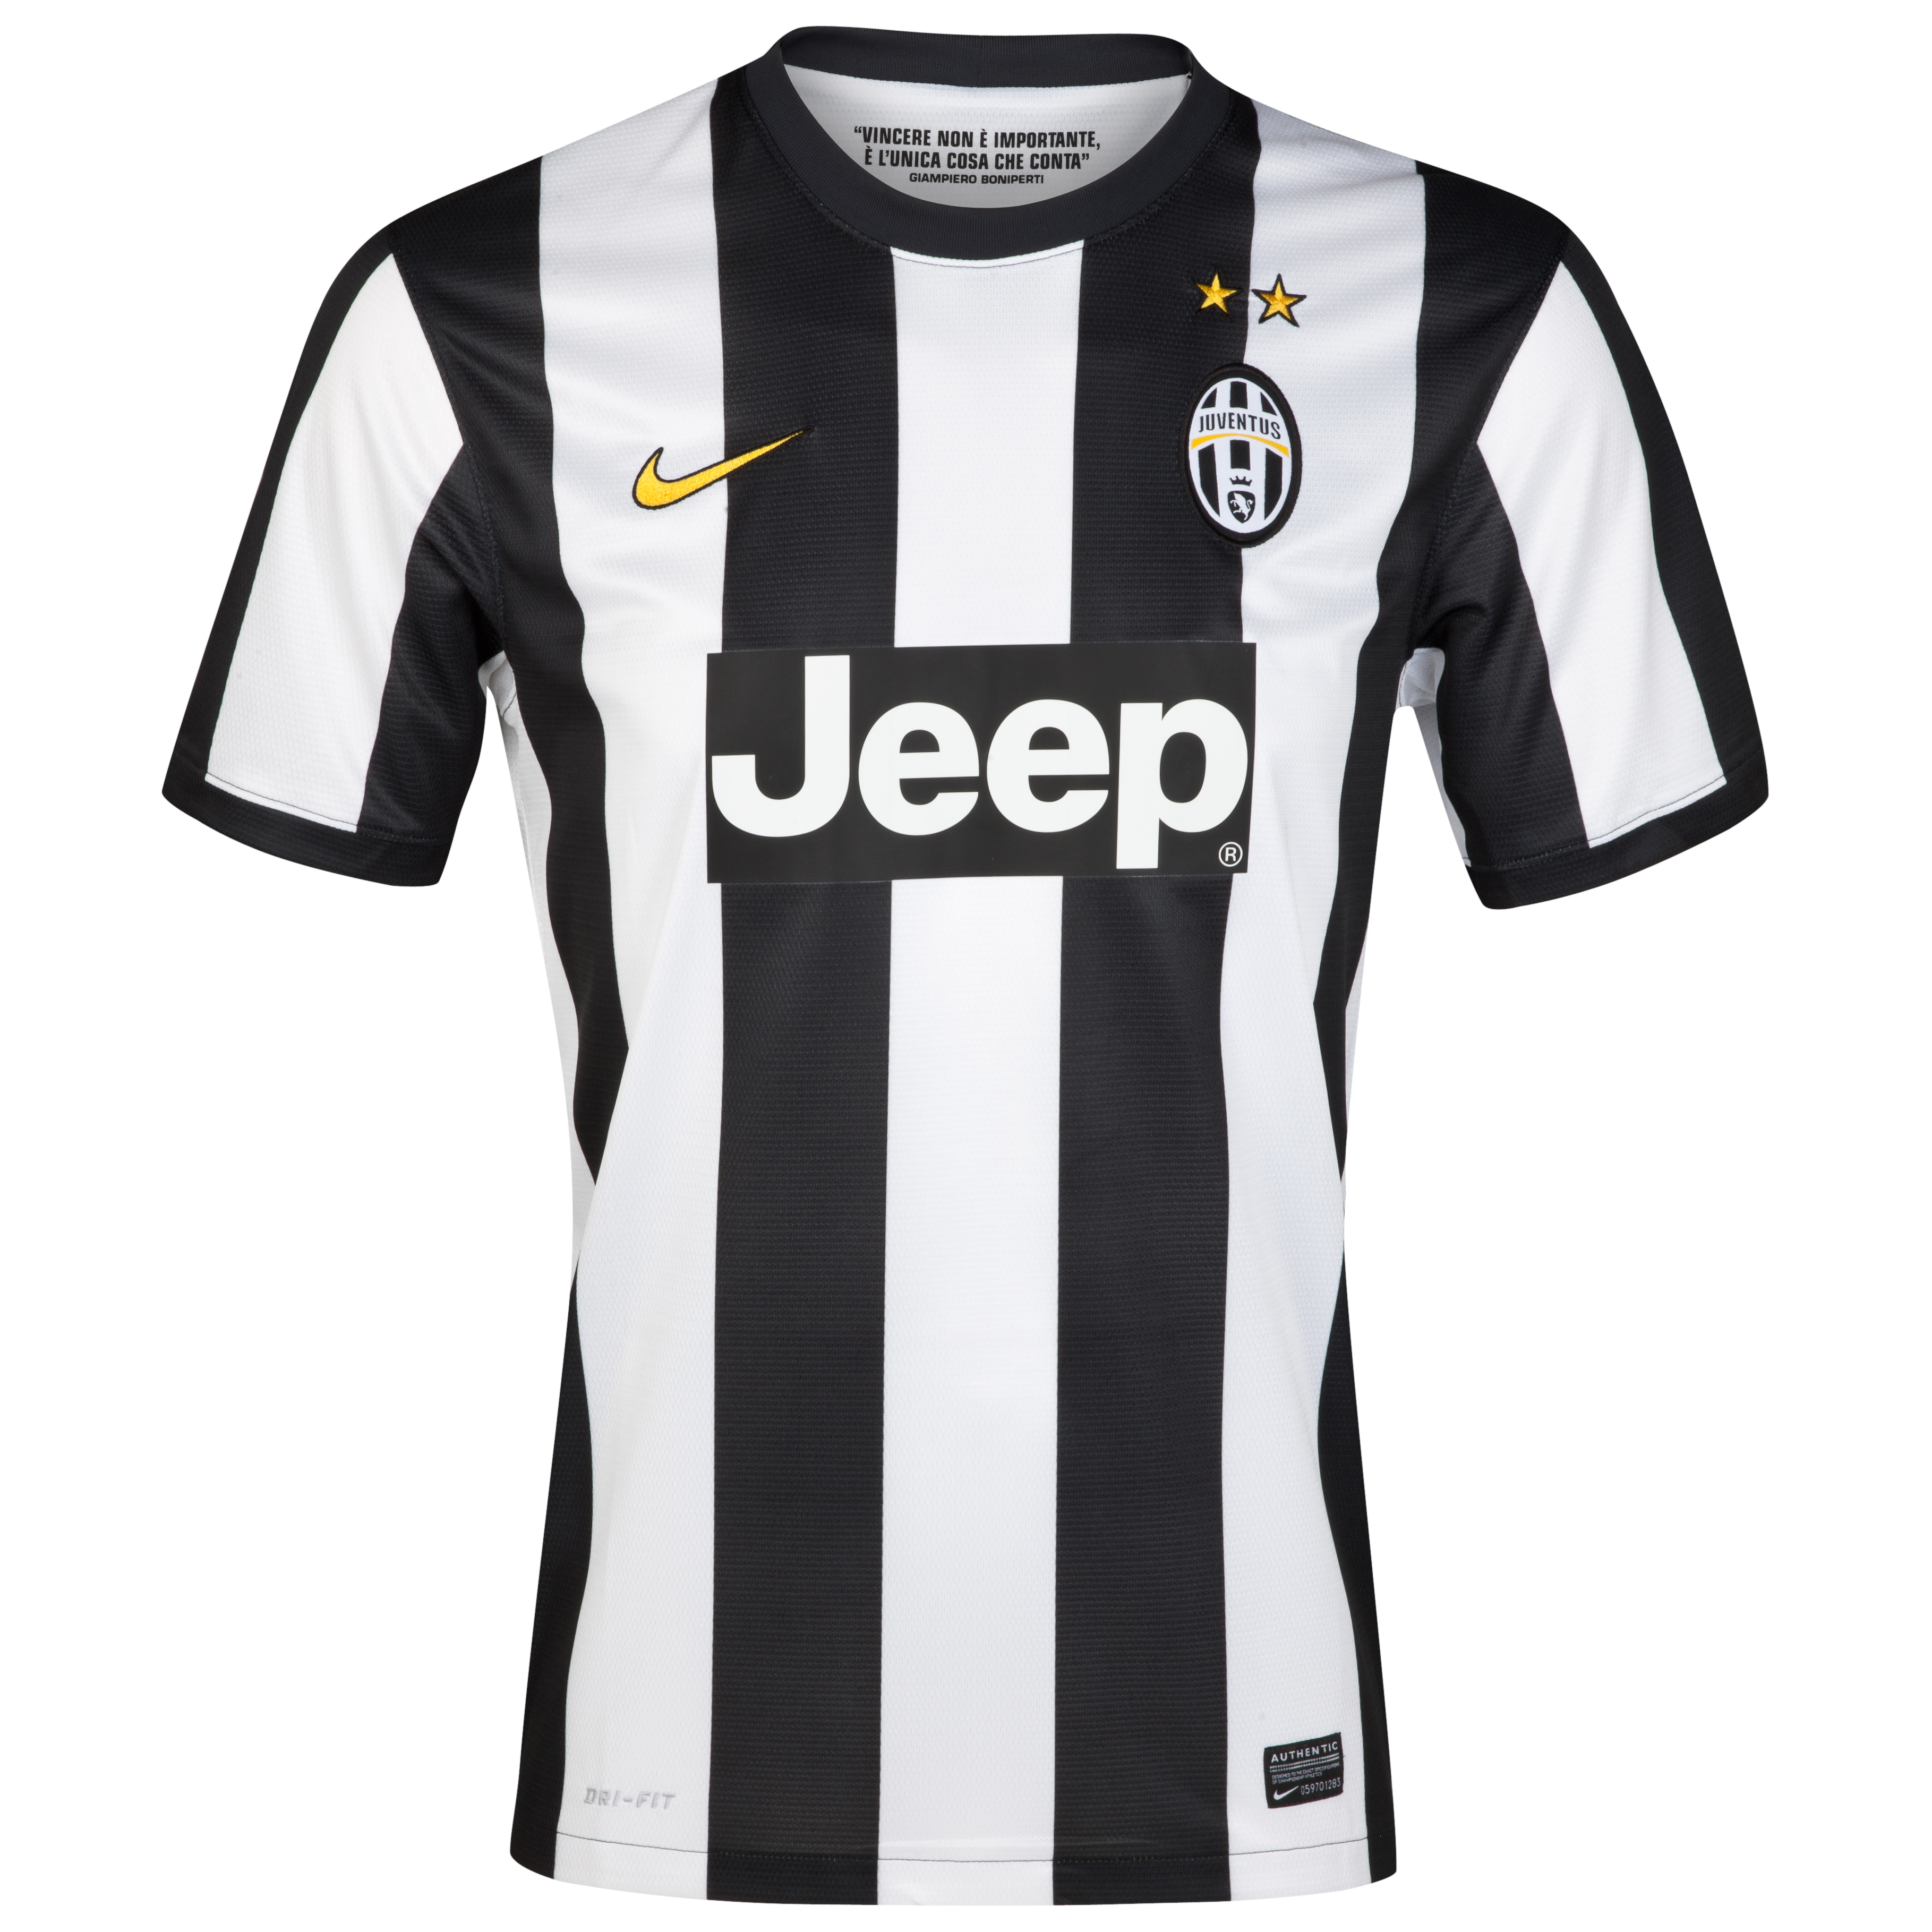 Juventus Home Shirt 2012/13